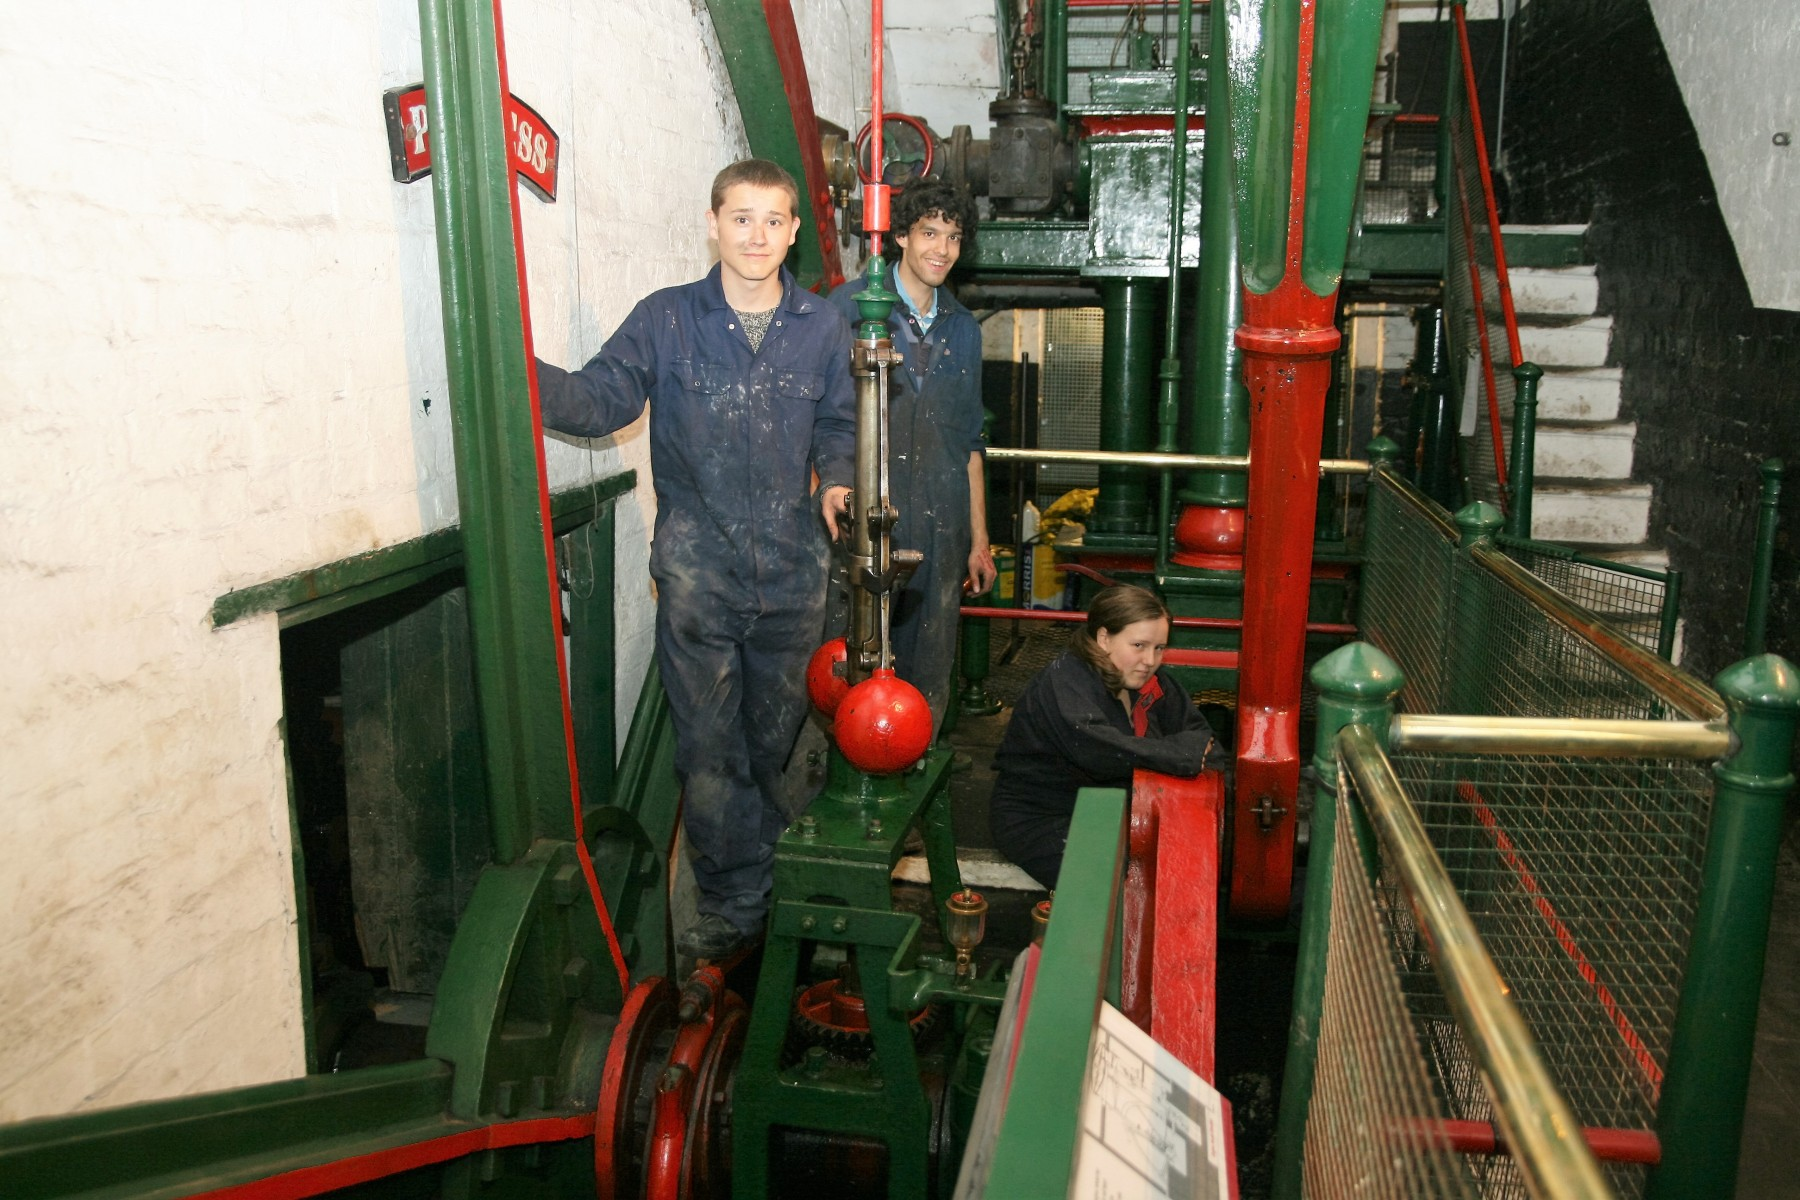 YOUNG ENGINE VOLUNTEERS